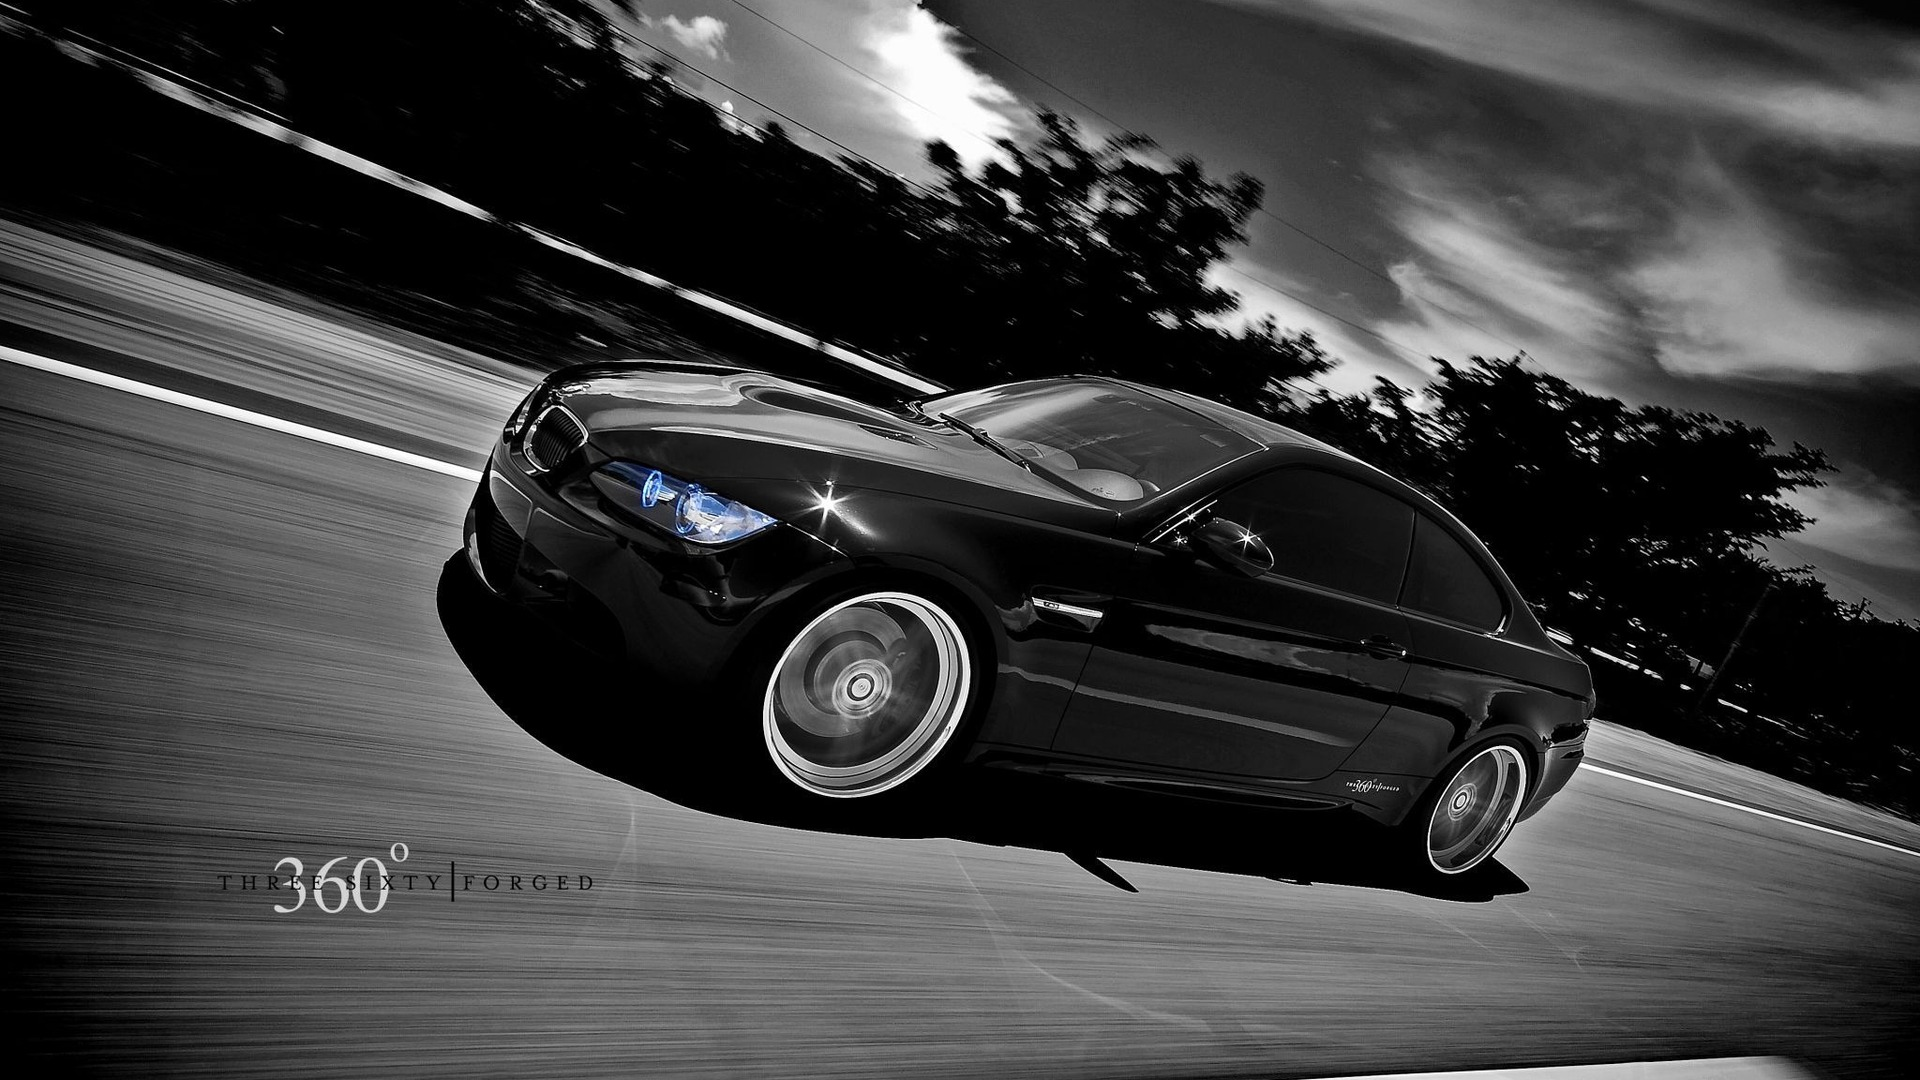 BMW Car 1920X1080 Pixels Full HD Wallpapers Collection - Tech Bug ...